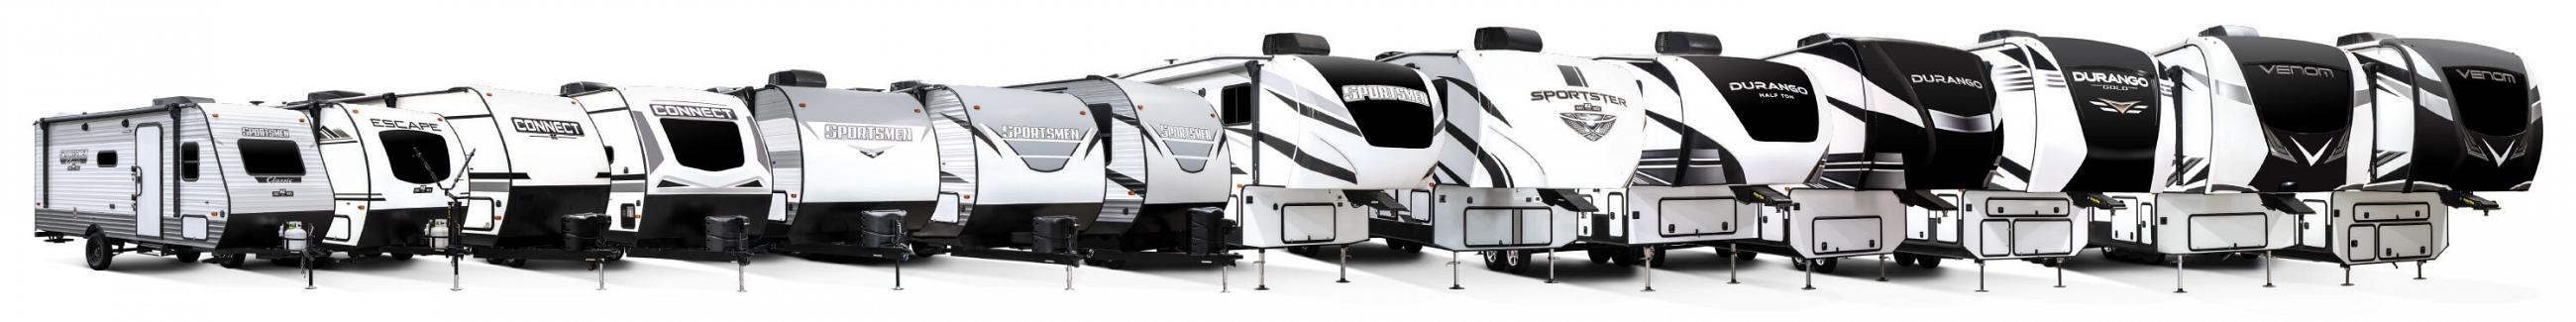 2021 KZ RV Exterior Product Lineup